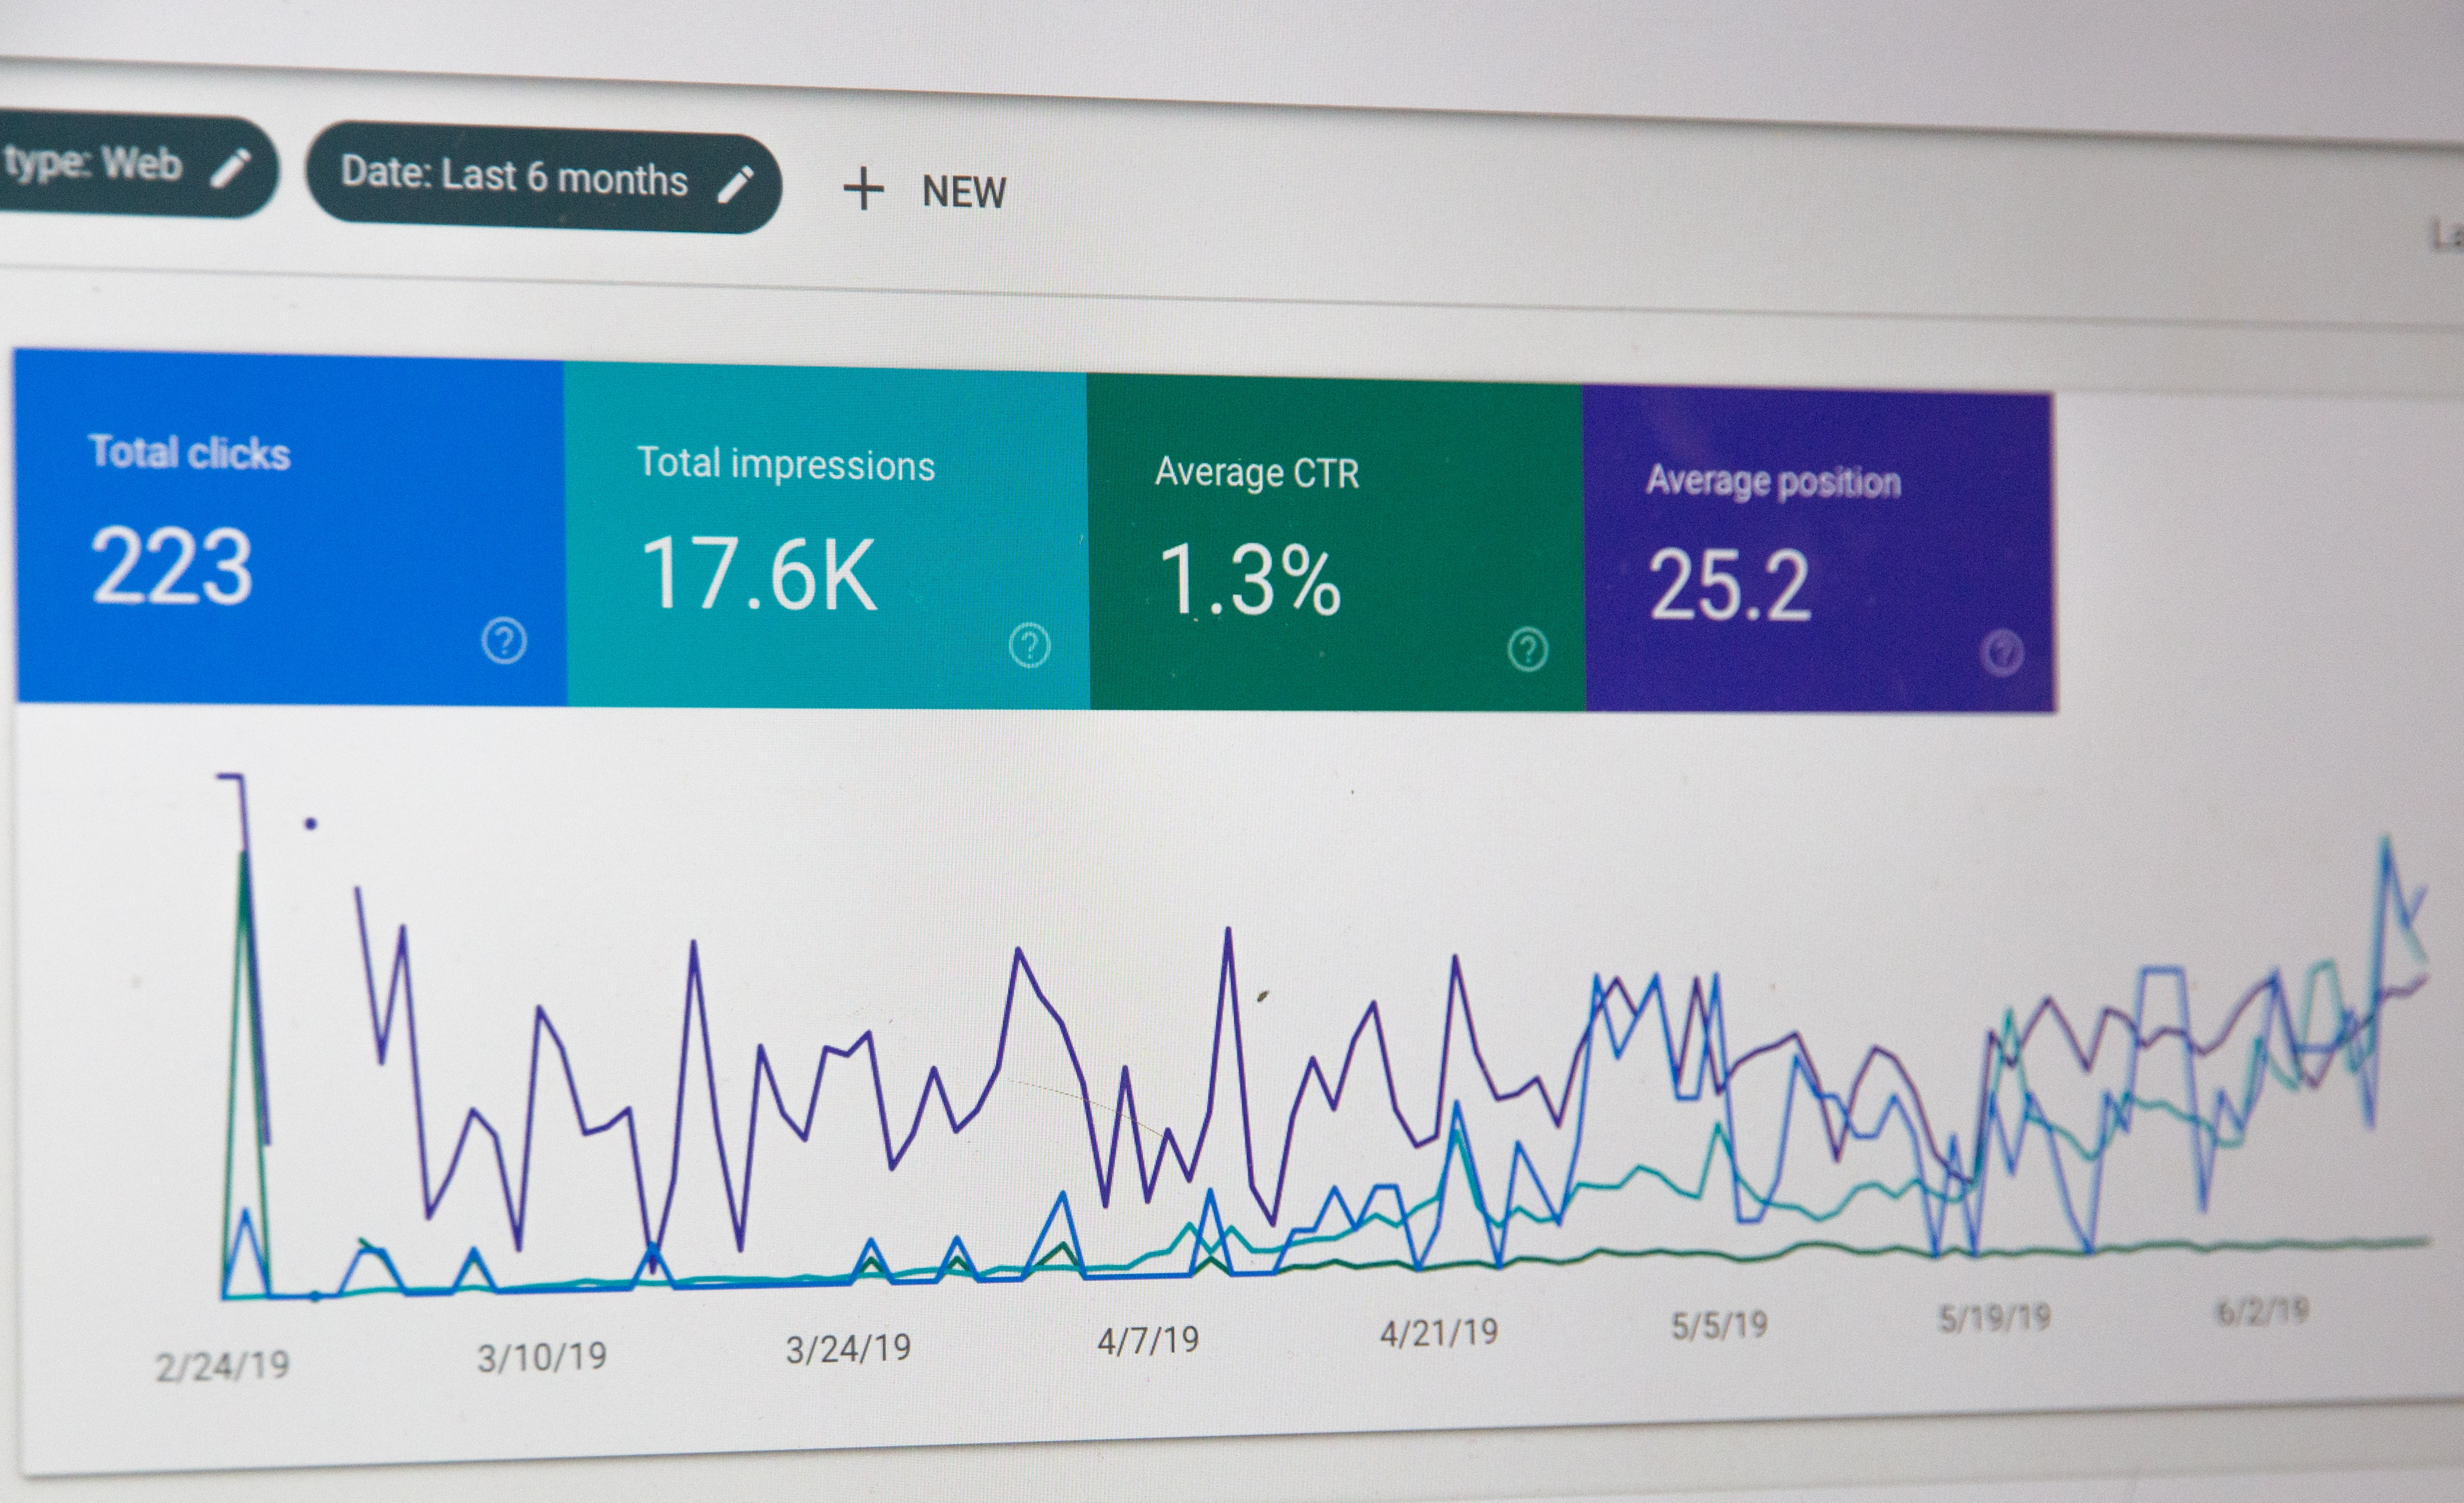 How We Boosted Web Traffic and Improved SEO in 1 Year